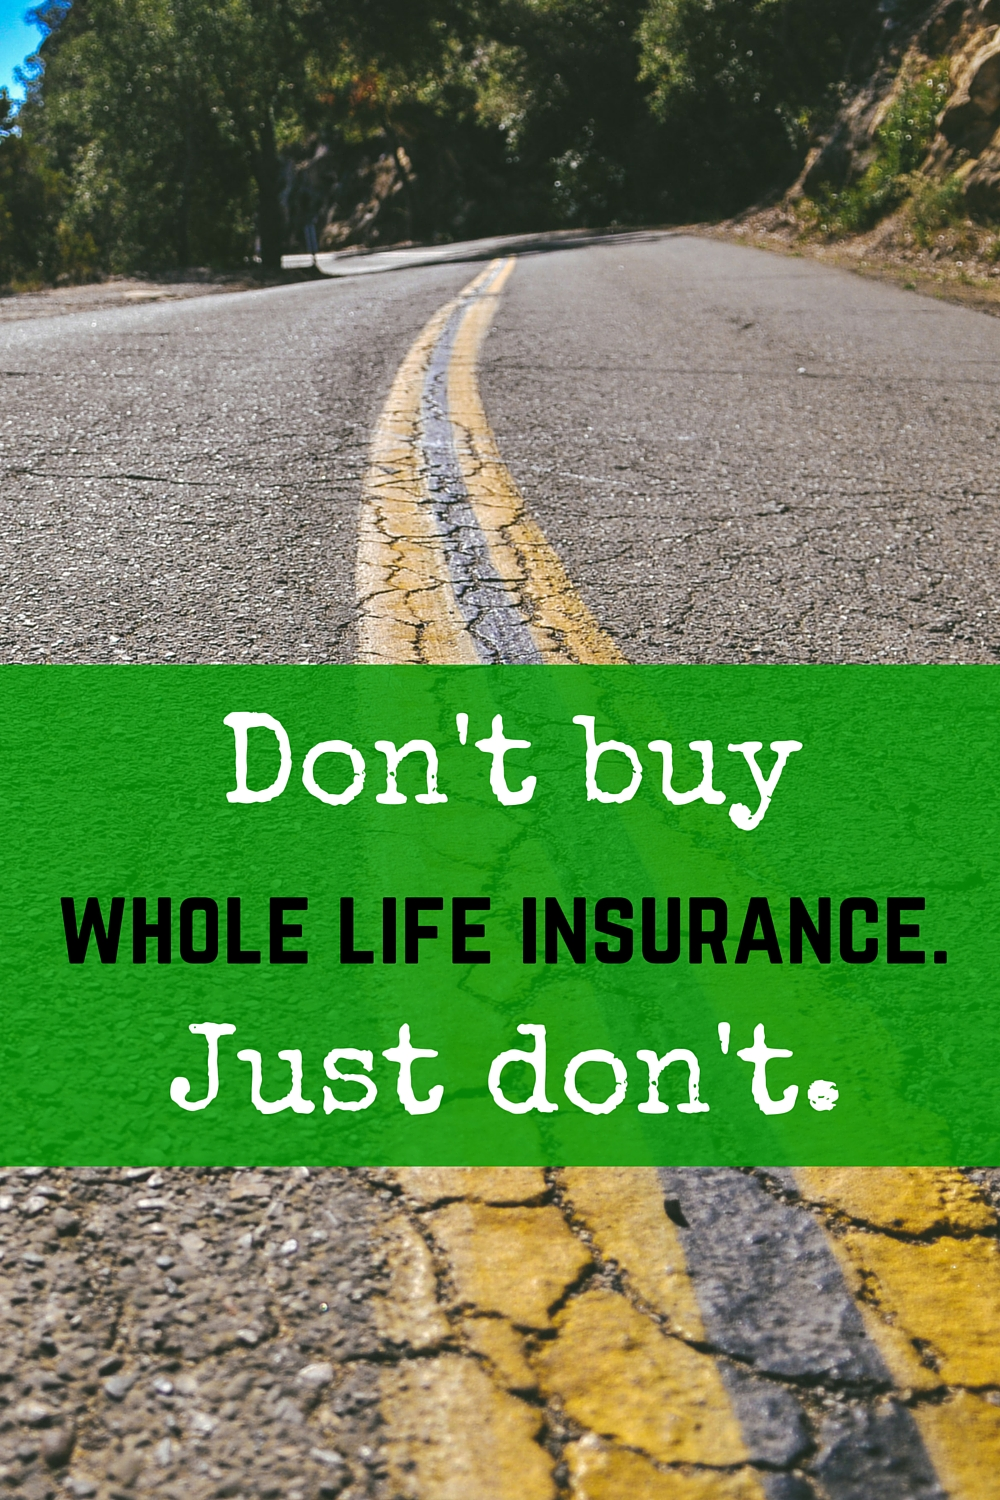 Life Insurance Quotes Whole Life Don't Buy Whole Life Insurancejust Don't I Pick Up Pennies